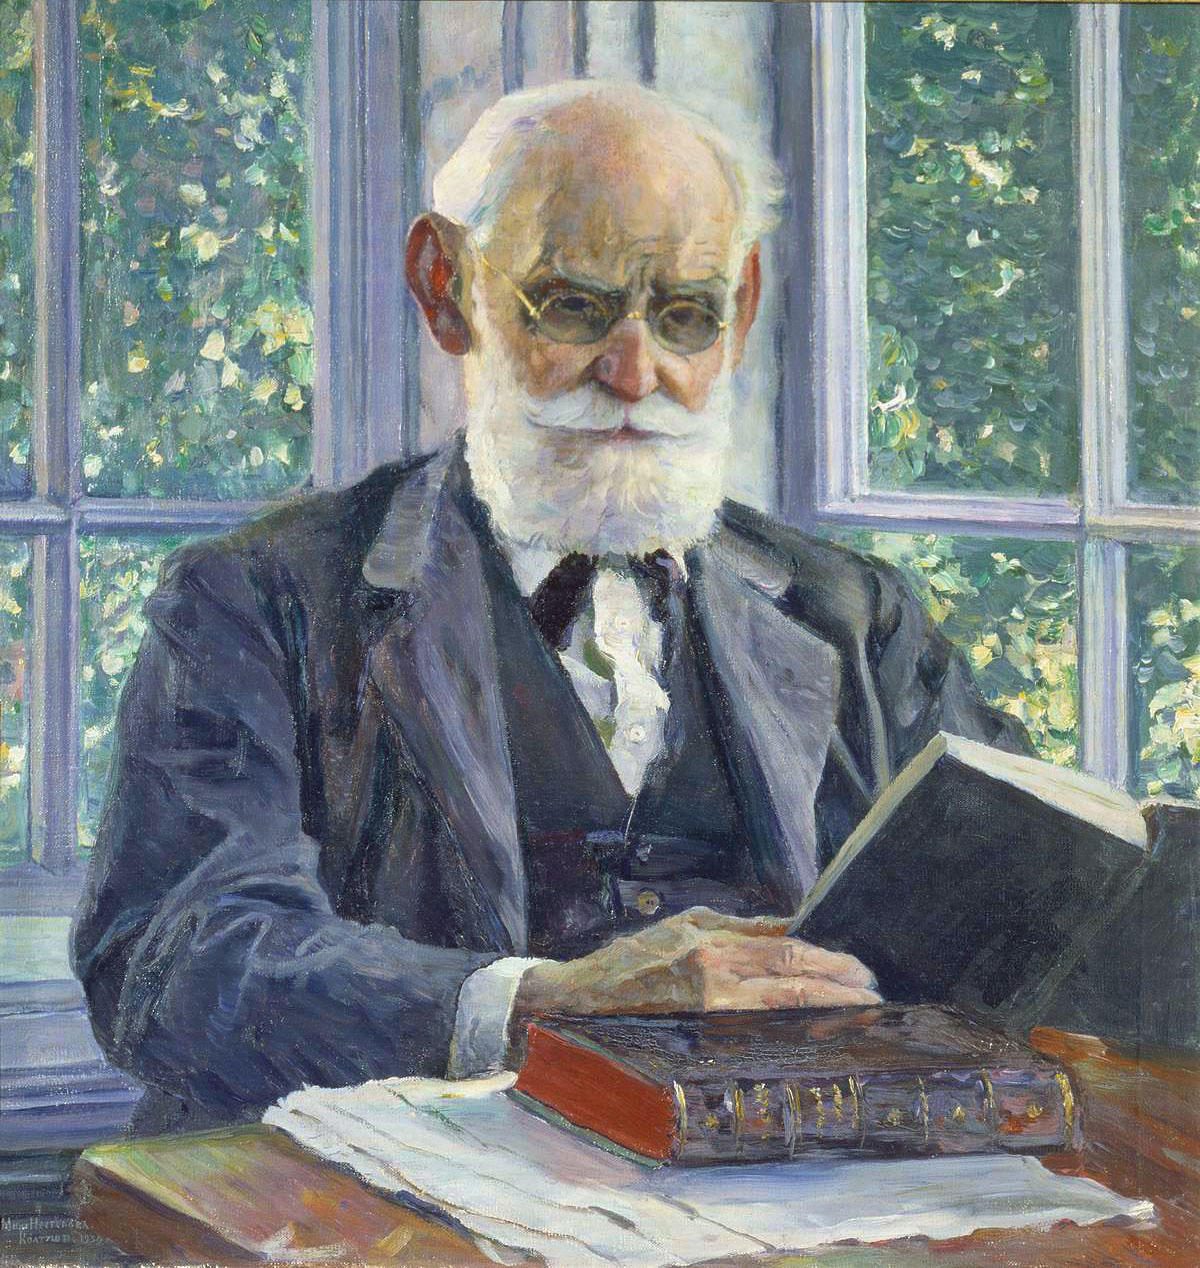 ivan pavlov Introduction: ivan petrovich pavlov (1849-1936) was born in ryazan, a  small village of russia, where his father was a village priest he did his primary.